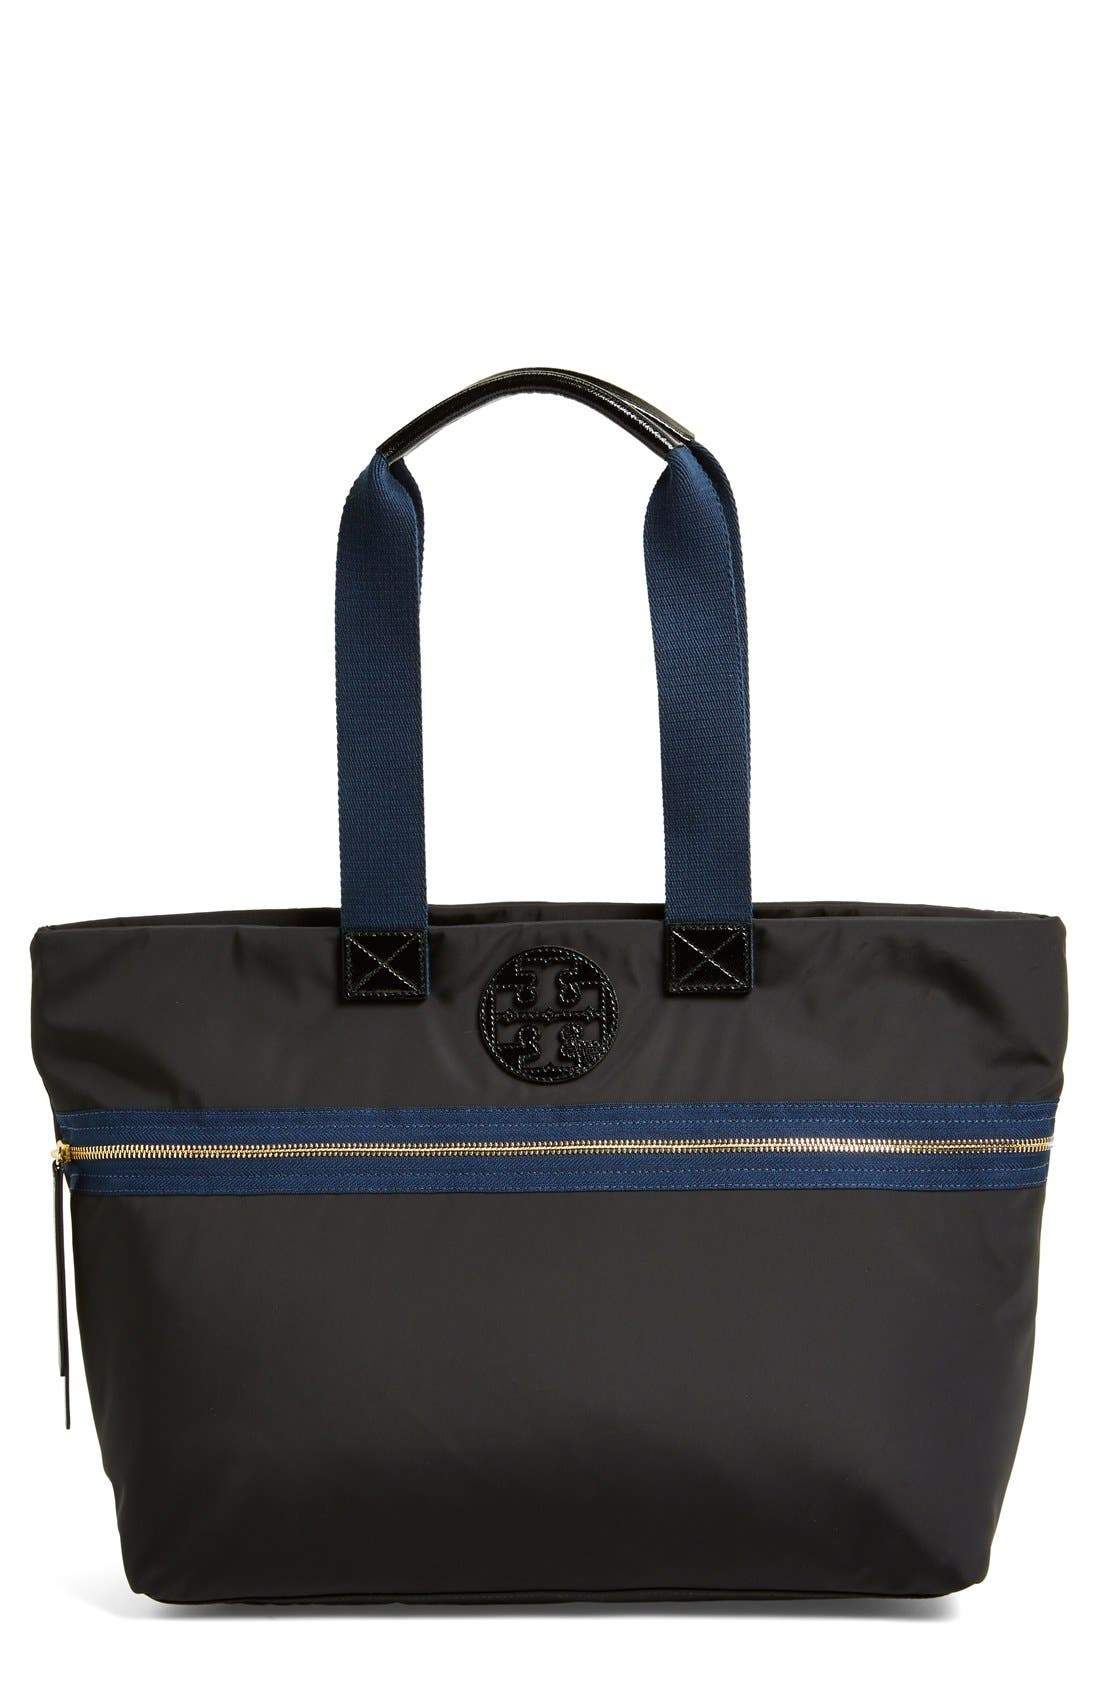 Alternate Image 1 Selected - Tory Burch Nylon Tote